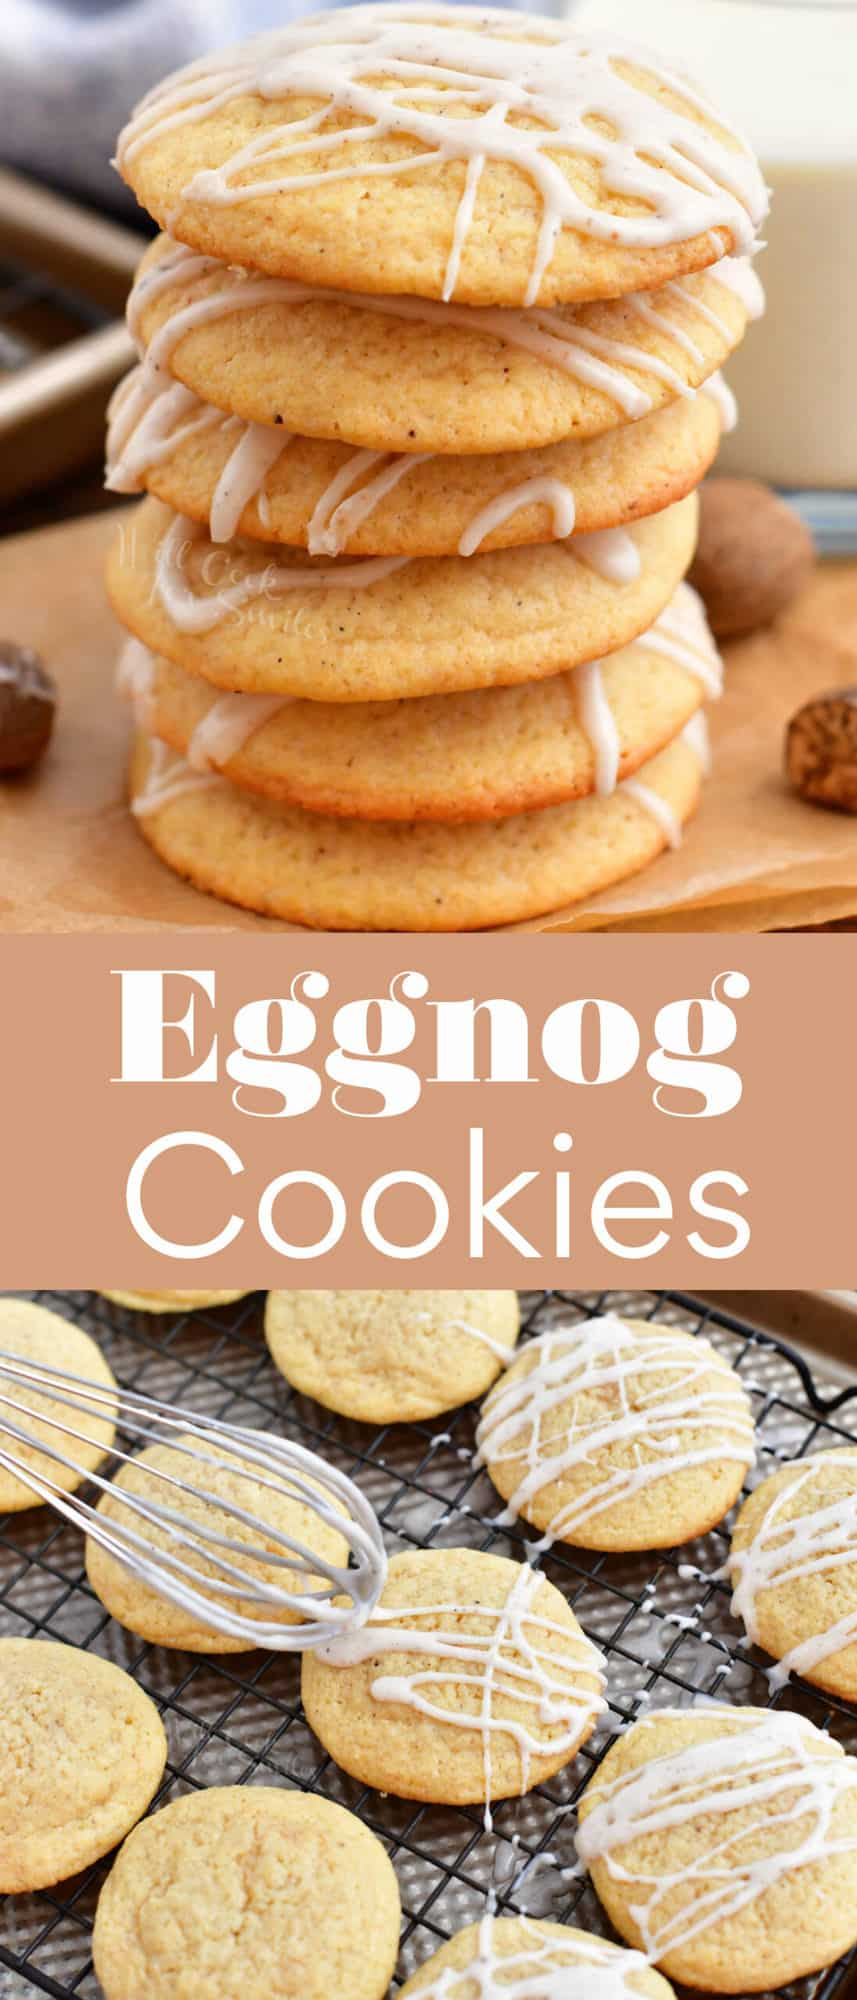 Eggnog cookies are both stacked in a pile and spread on a wire cooling rack.